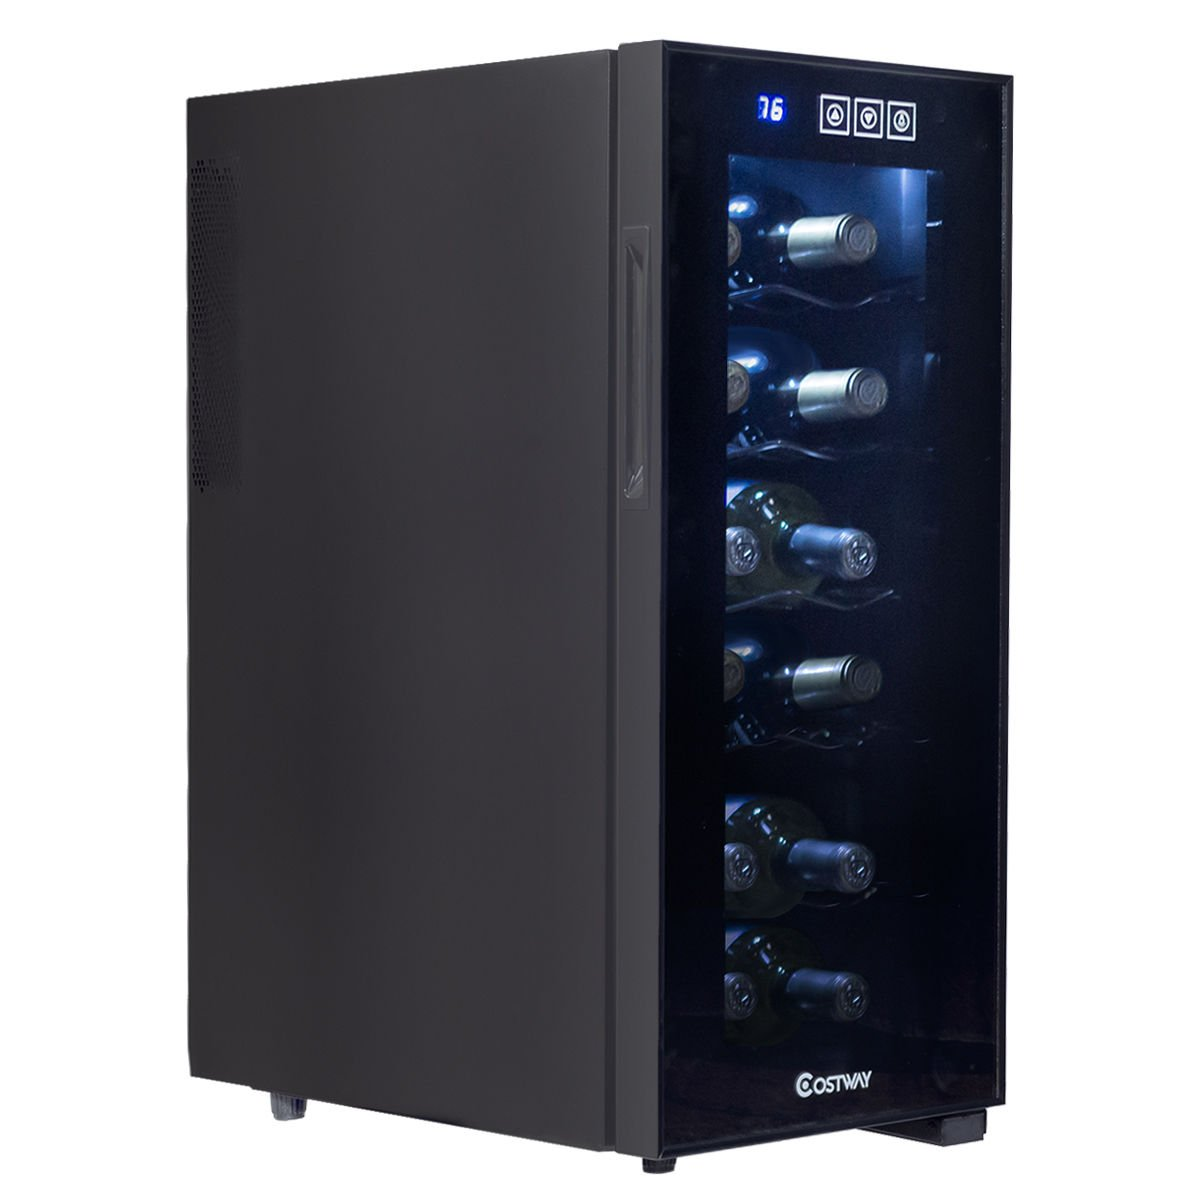 Costway Thermoelectric Wine Cooler Freestanding Cellar Chiller Refrigerator Quiet Compact w/ Touch Control (12 Bottle)